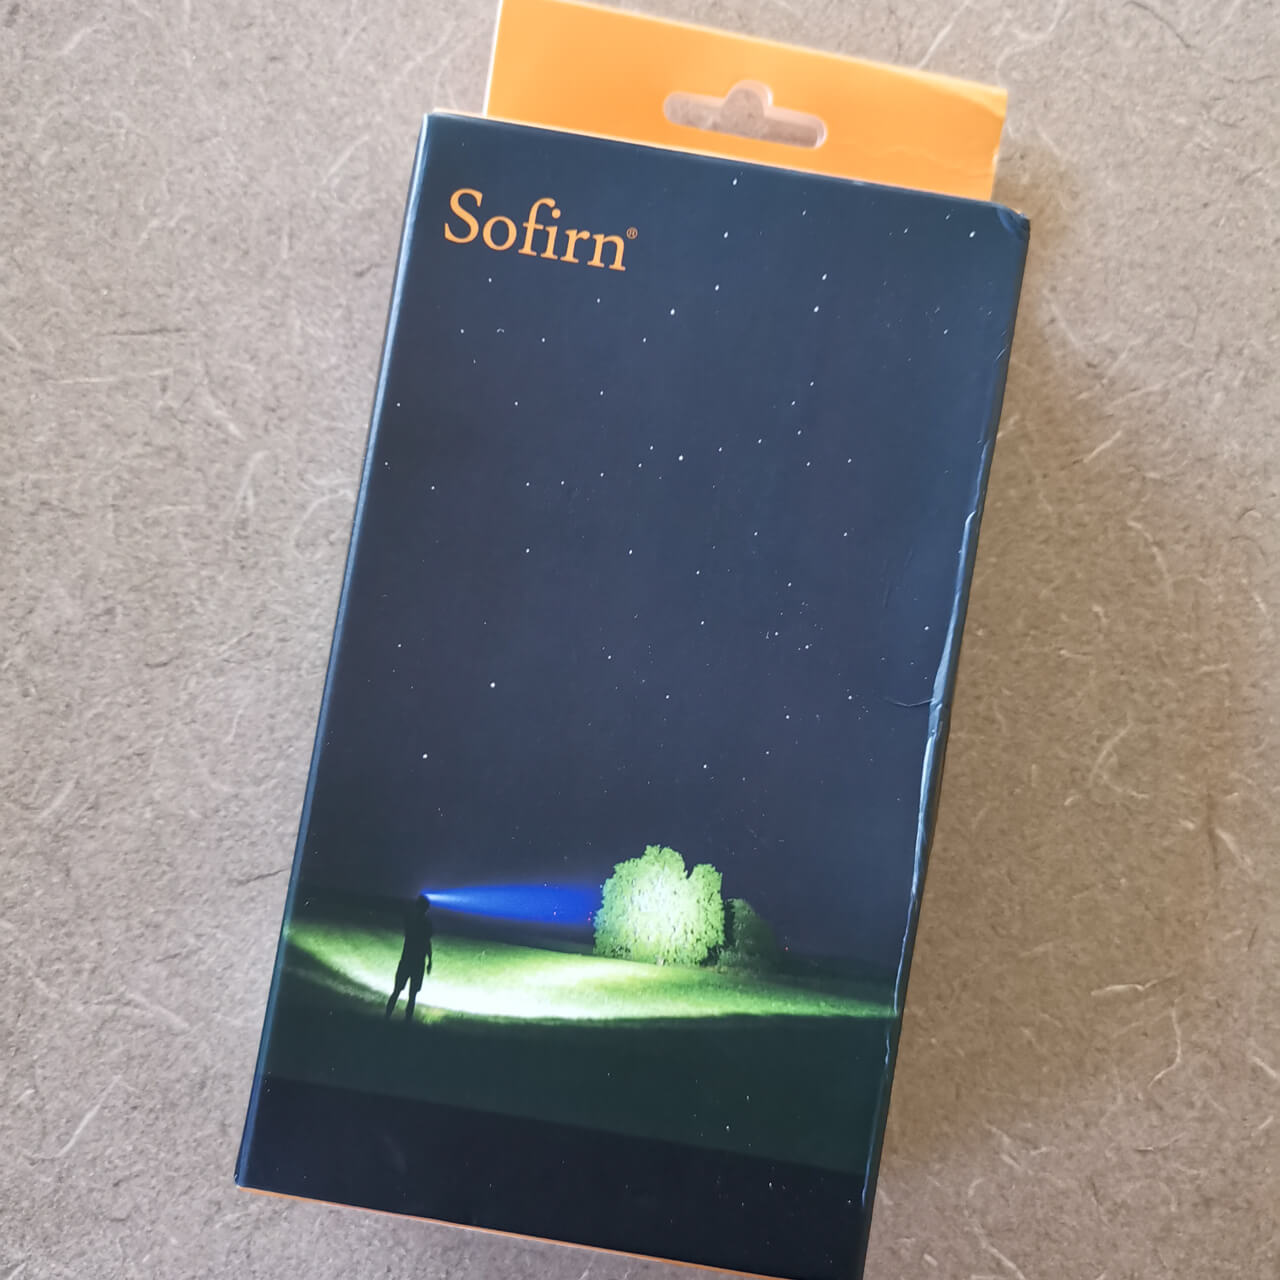 Sofirn SP31 V2.0 Package